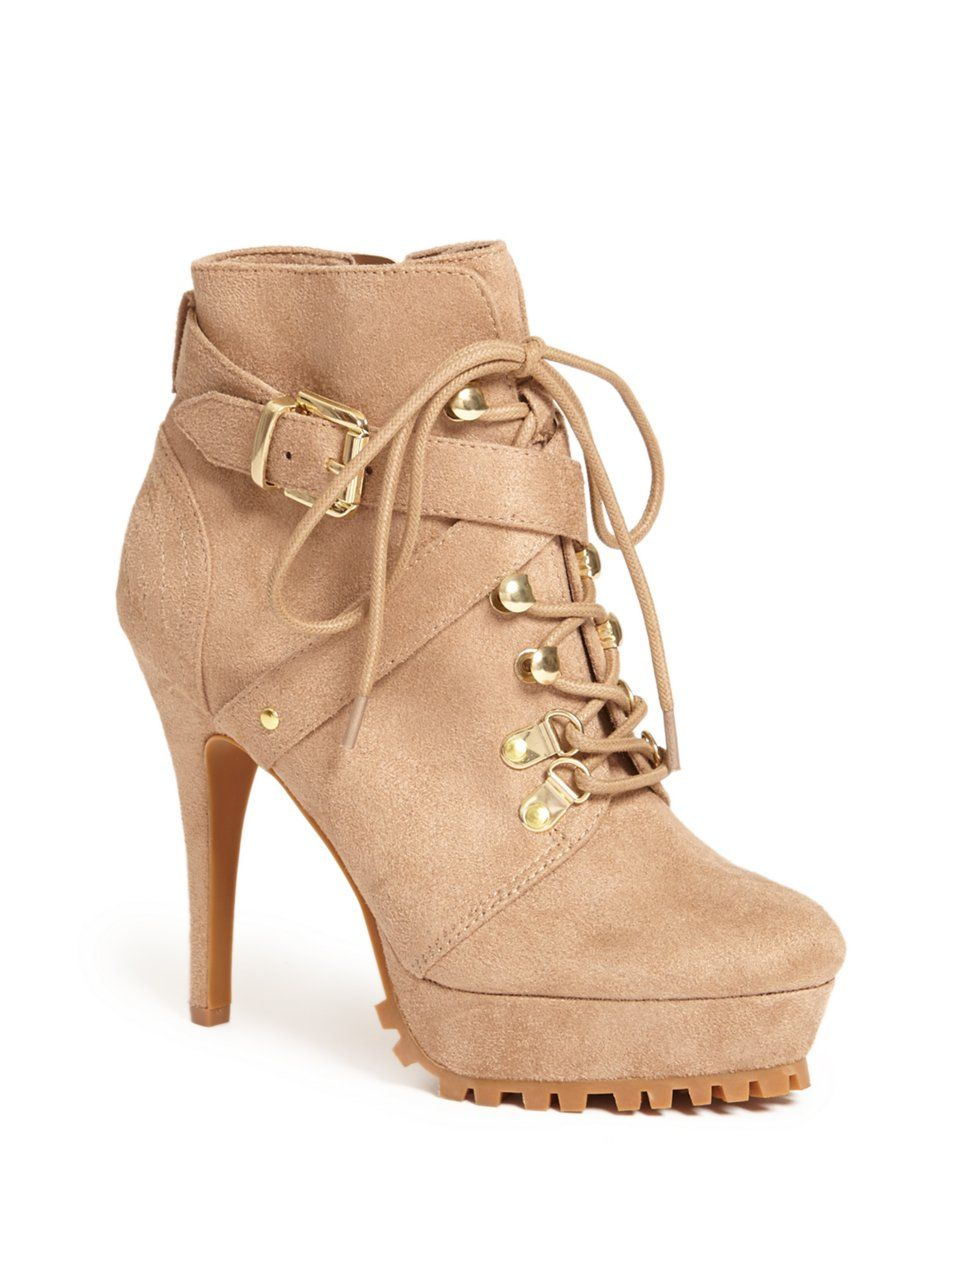 Women's Suede Pink Boots + FREE SHIPPING | Shoes |